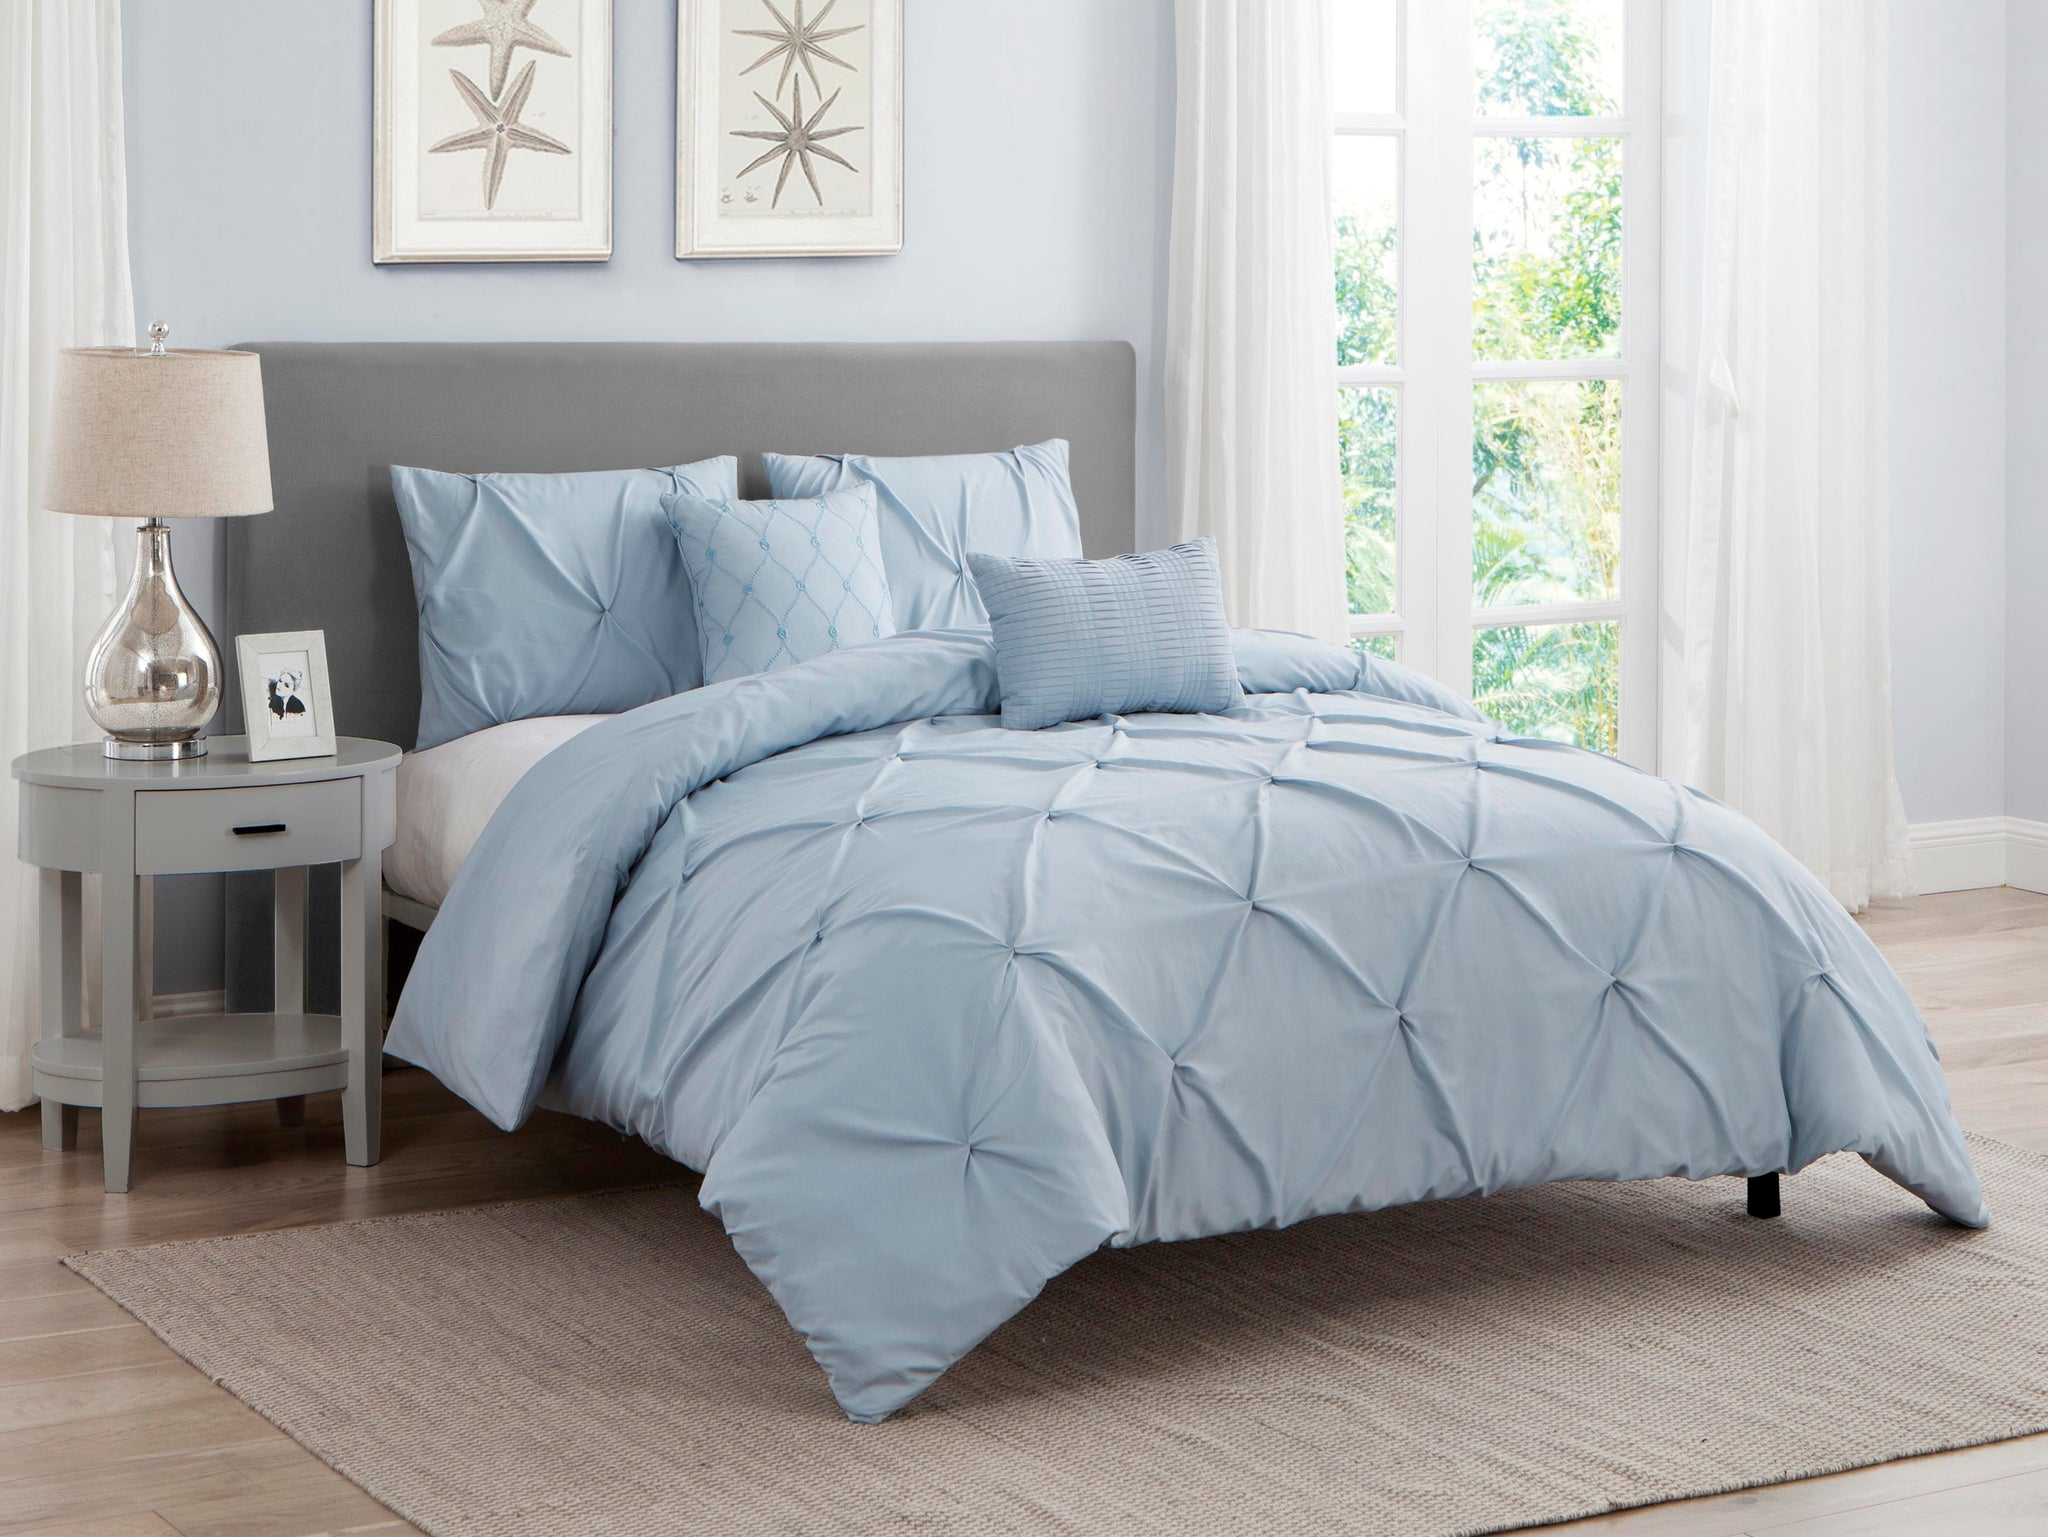 by design rack den pintuck diamond white cover shop nordstrom set california pleated product duvet nmk